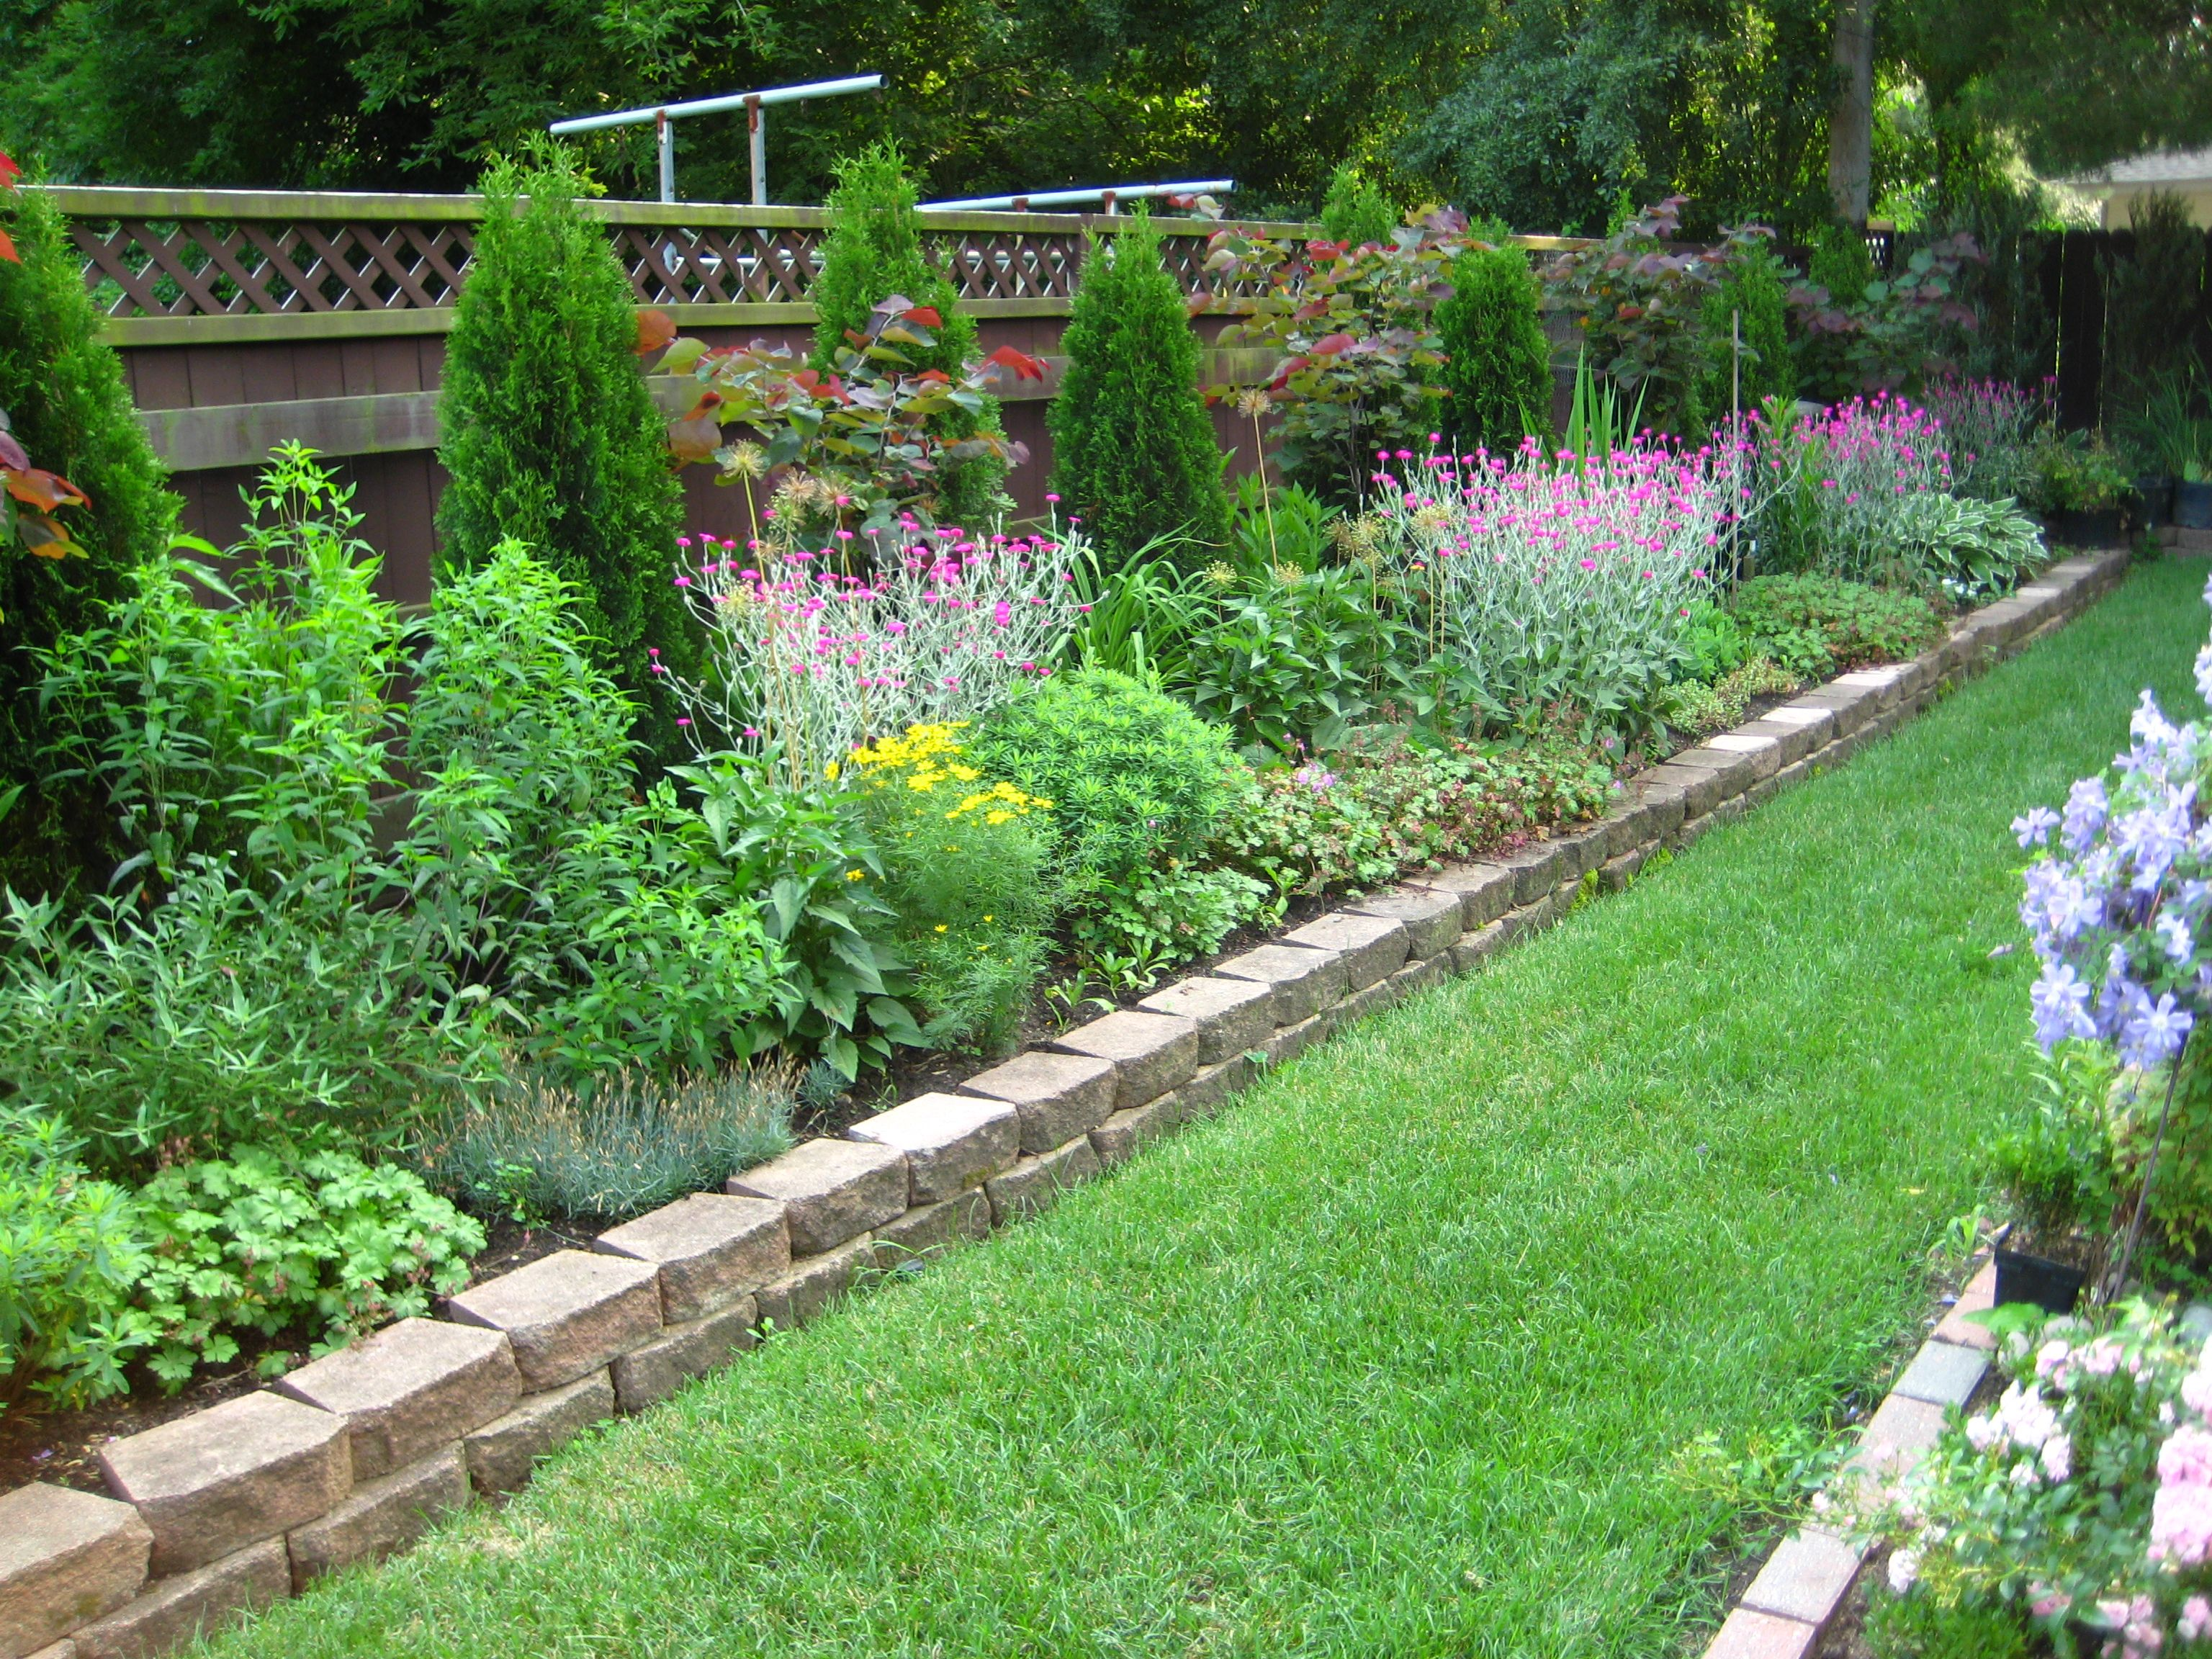 backyard landscaping remodeling your backyard before as now has so many ideas backyard